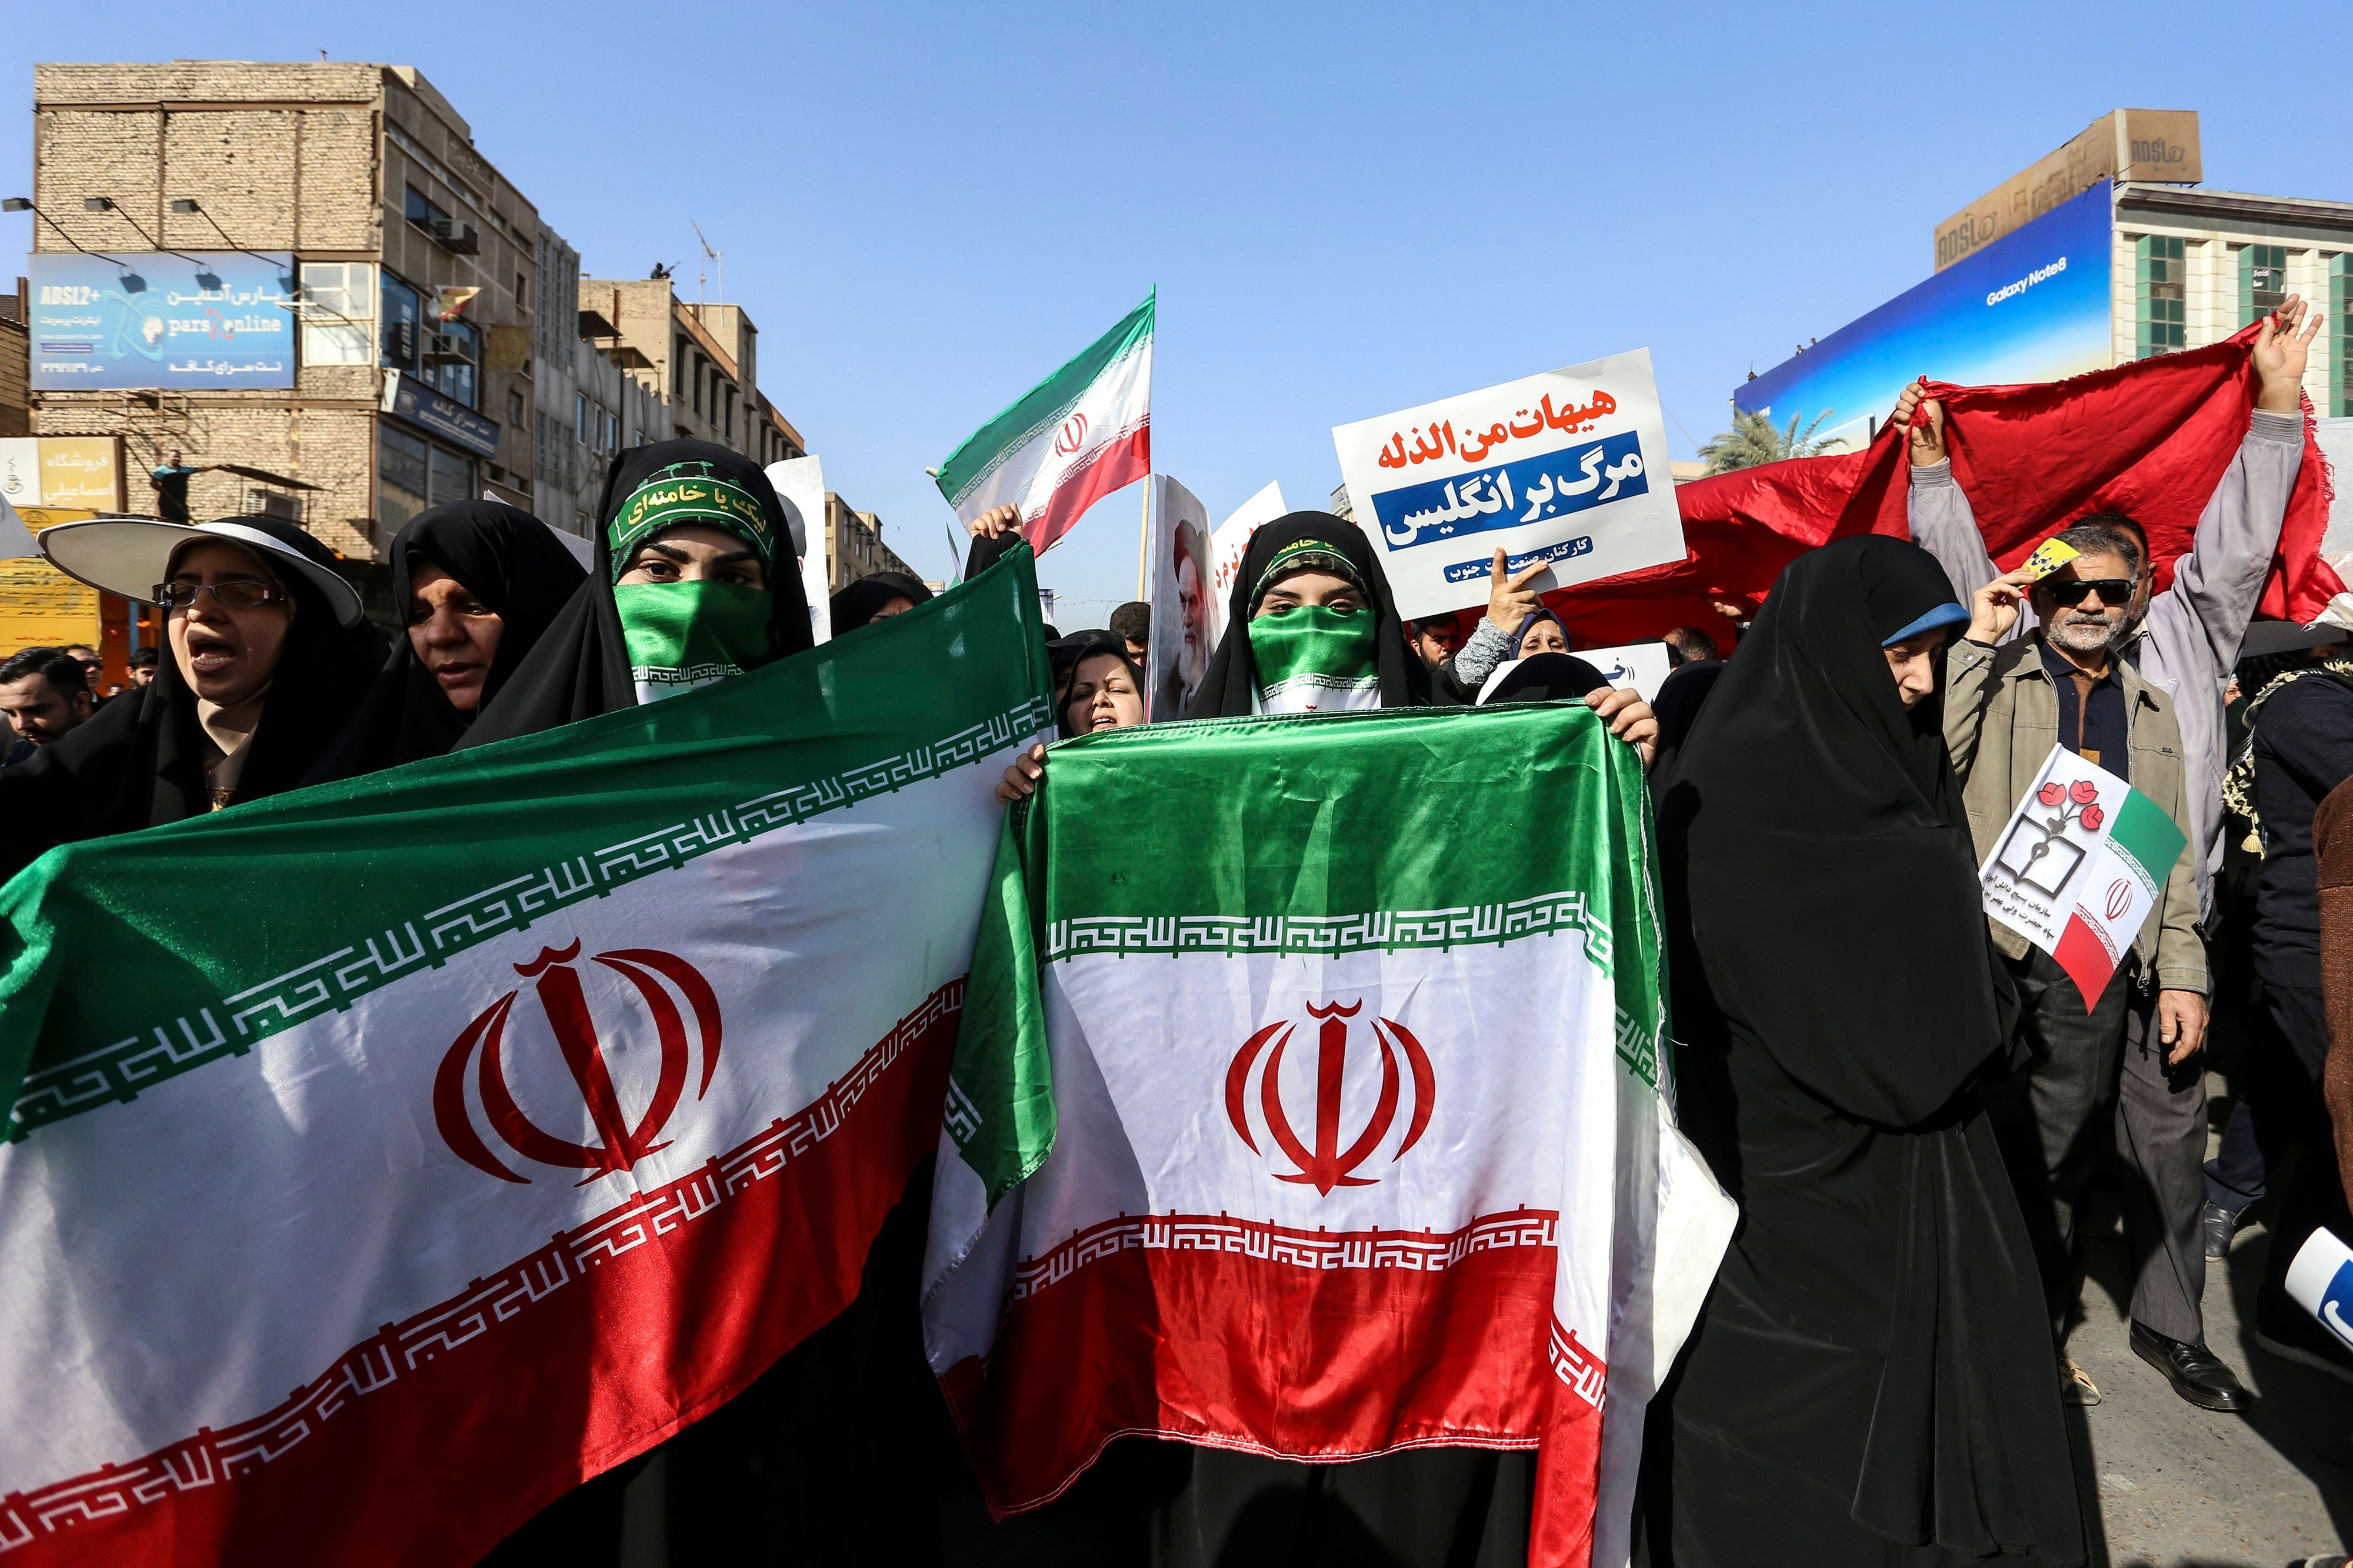 Iran protests: State TV broadcasts pro-government rallies